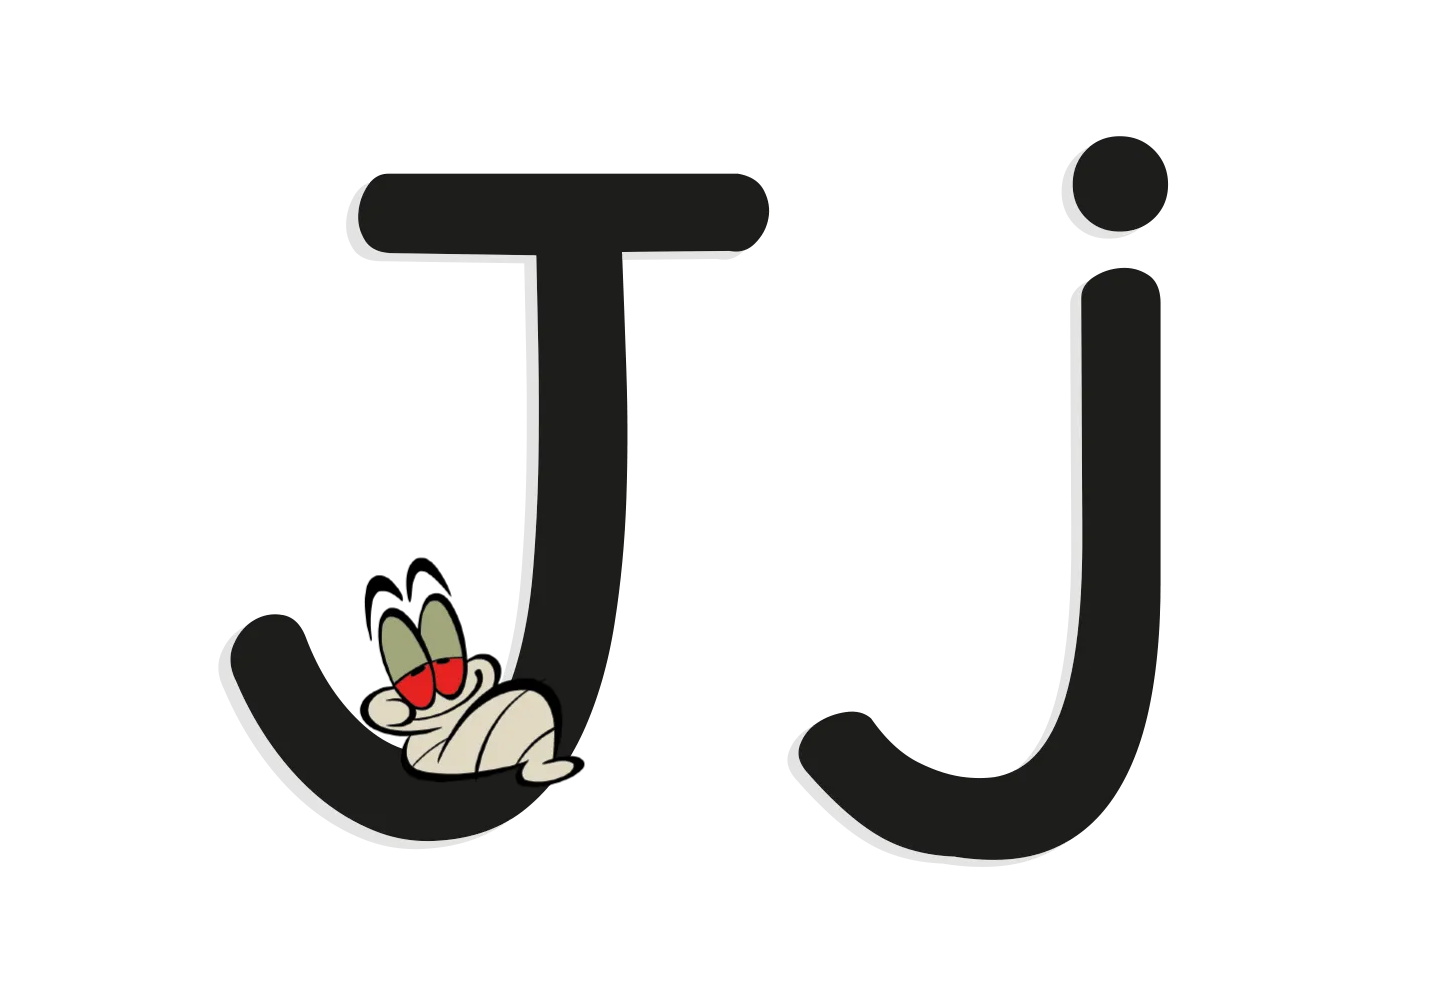 The letter J with an illustrated worm